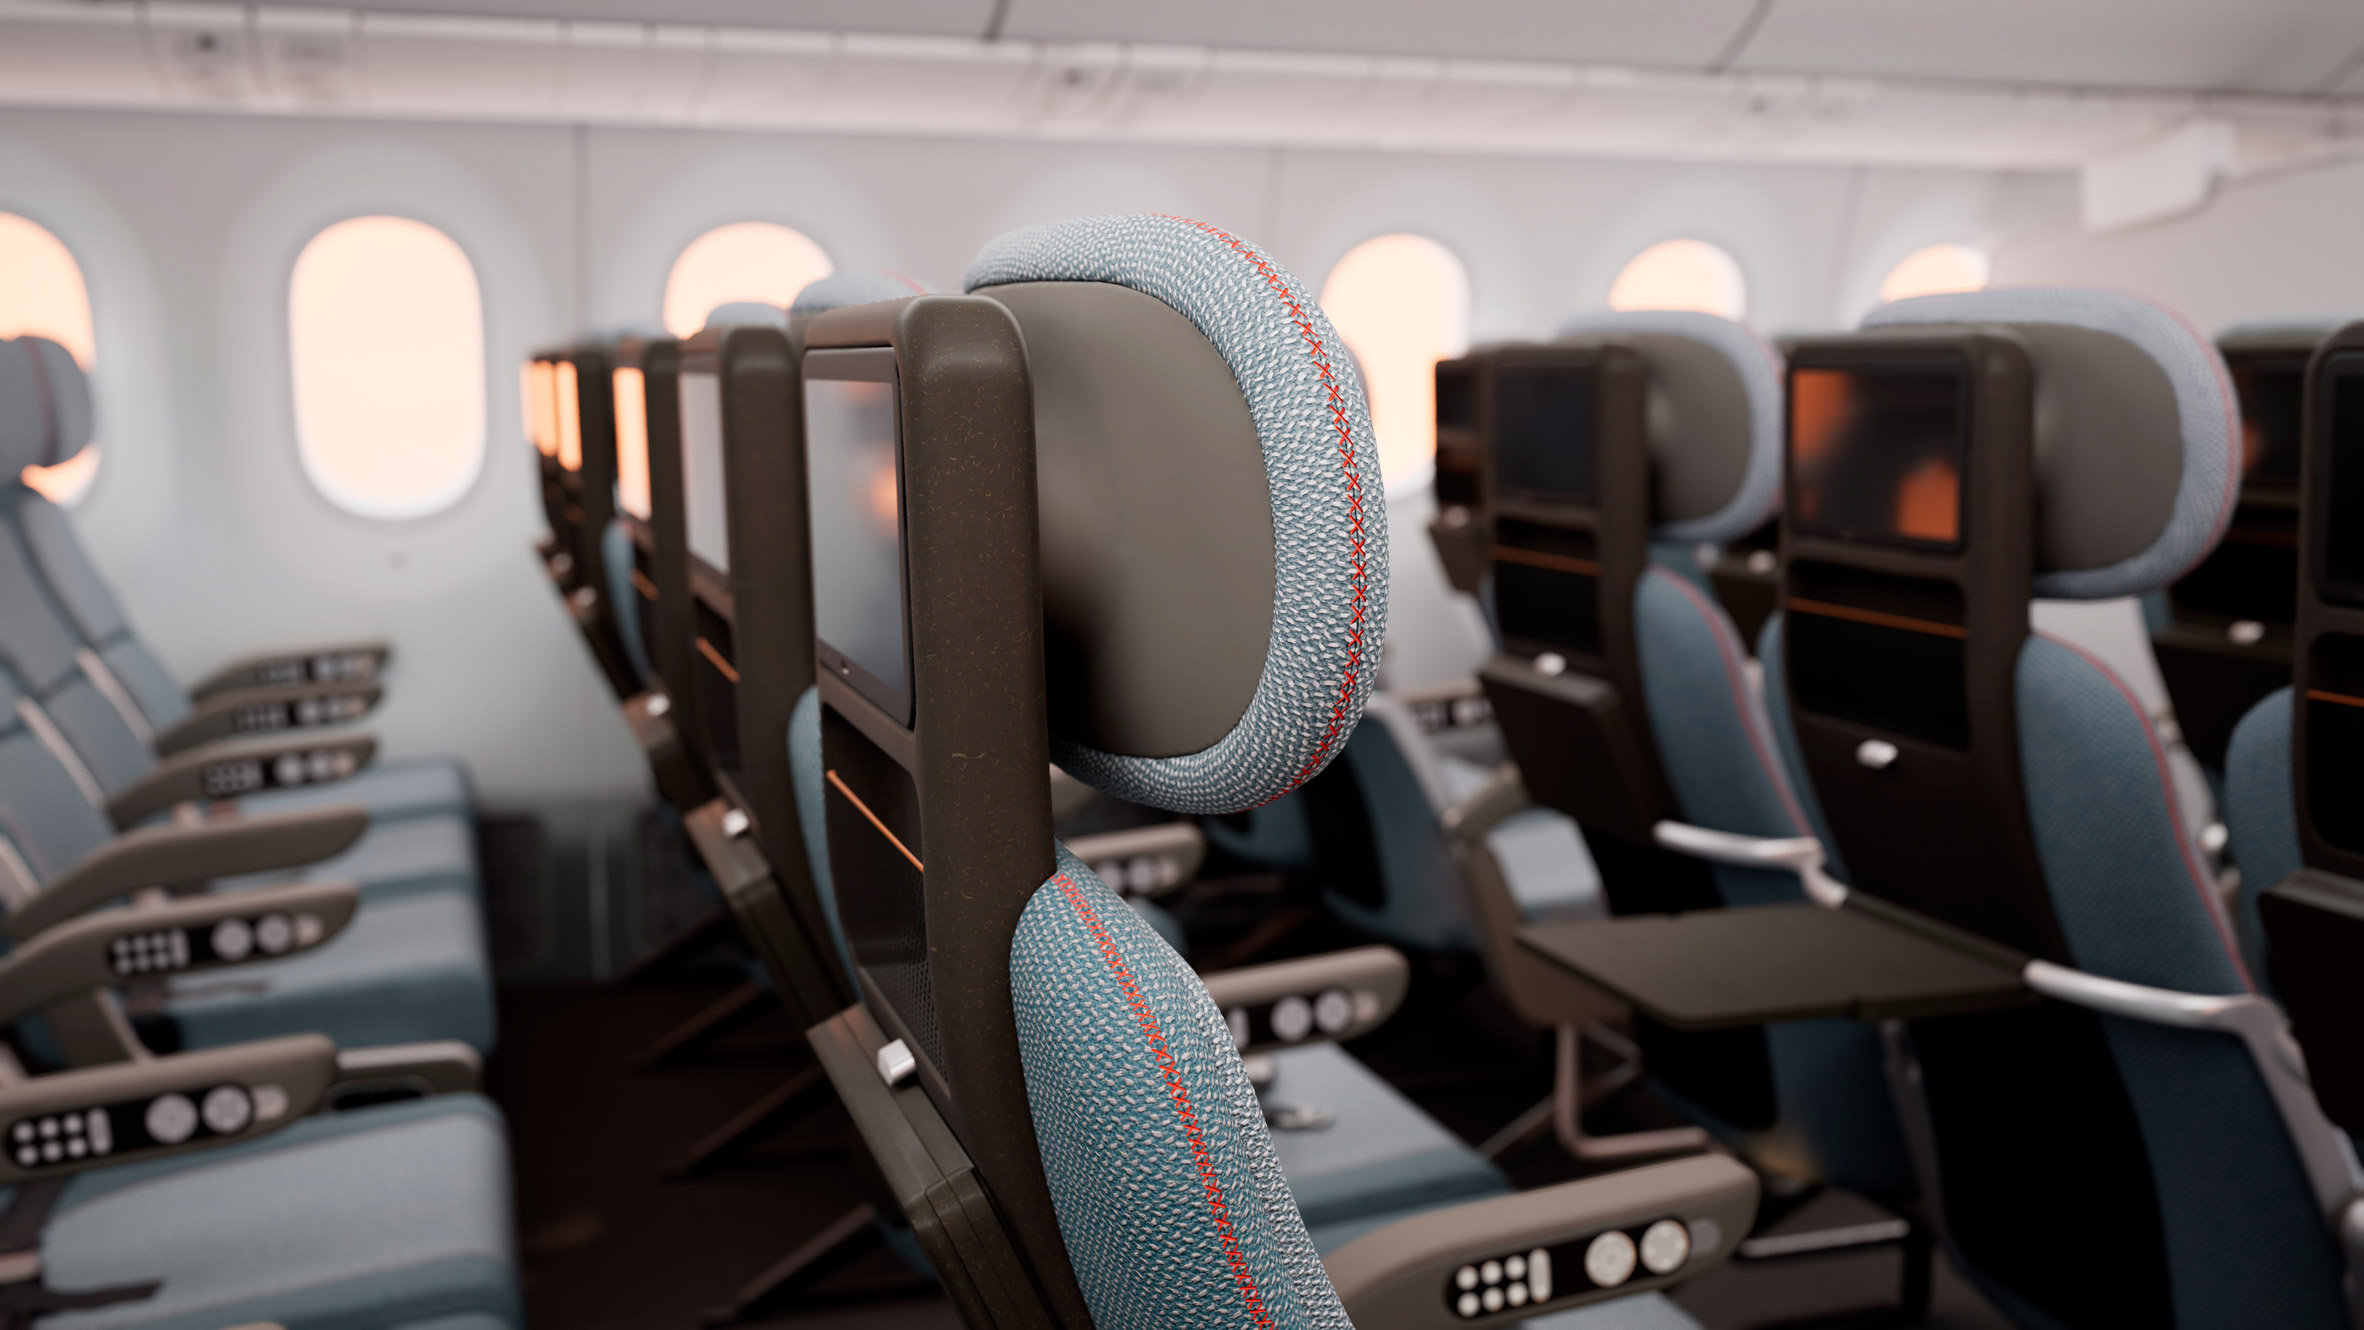 PearsonLloyd redesigns economy-class aeroplane seating to make better use of space